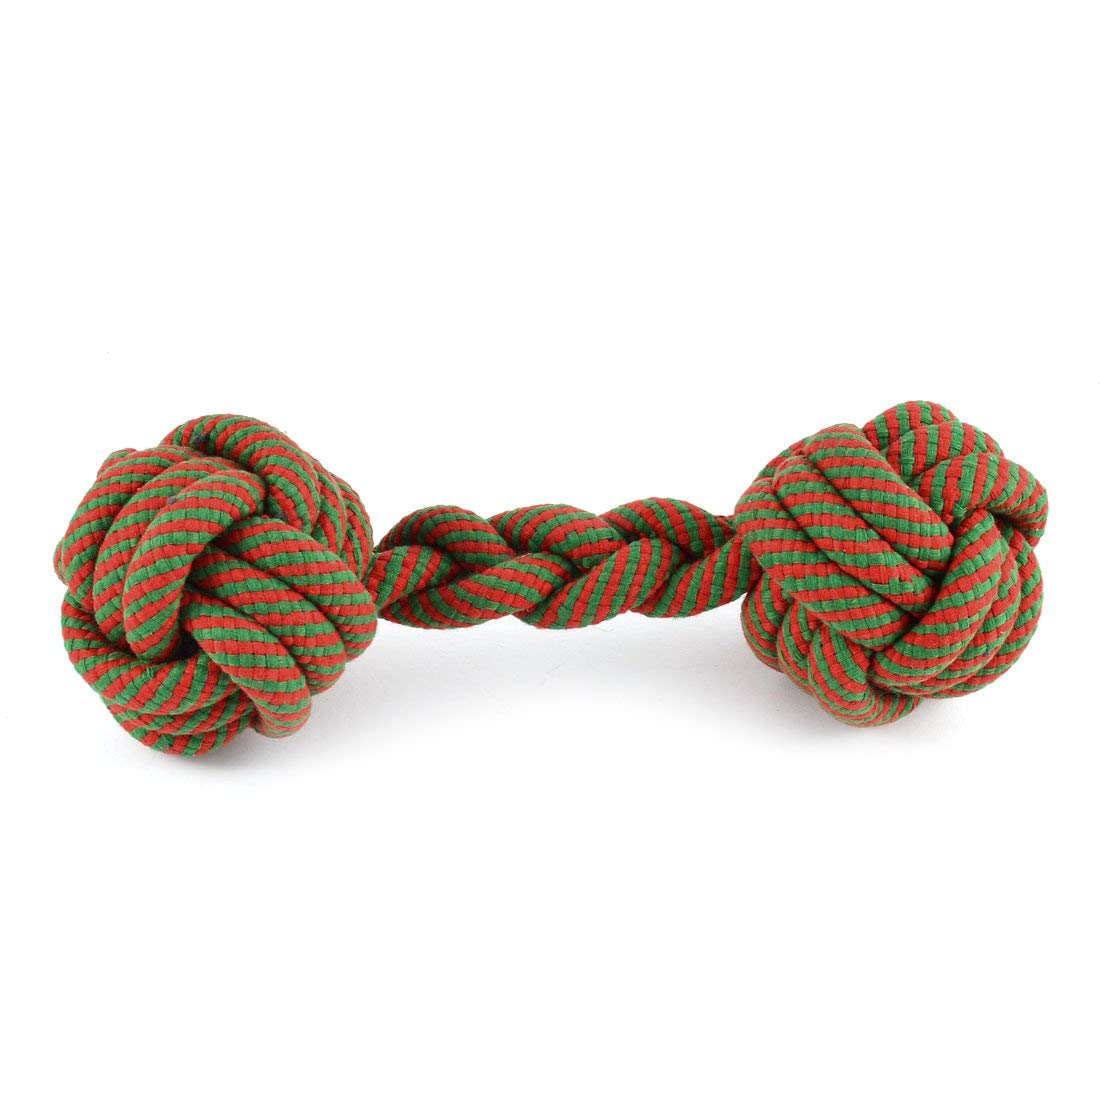 Pet Puppy Dog Teeth Cleanning Chew Knotted Braided Rope Ball Green Red